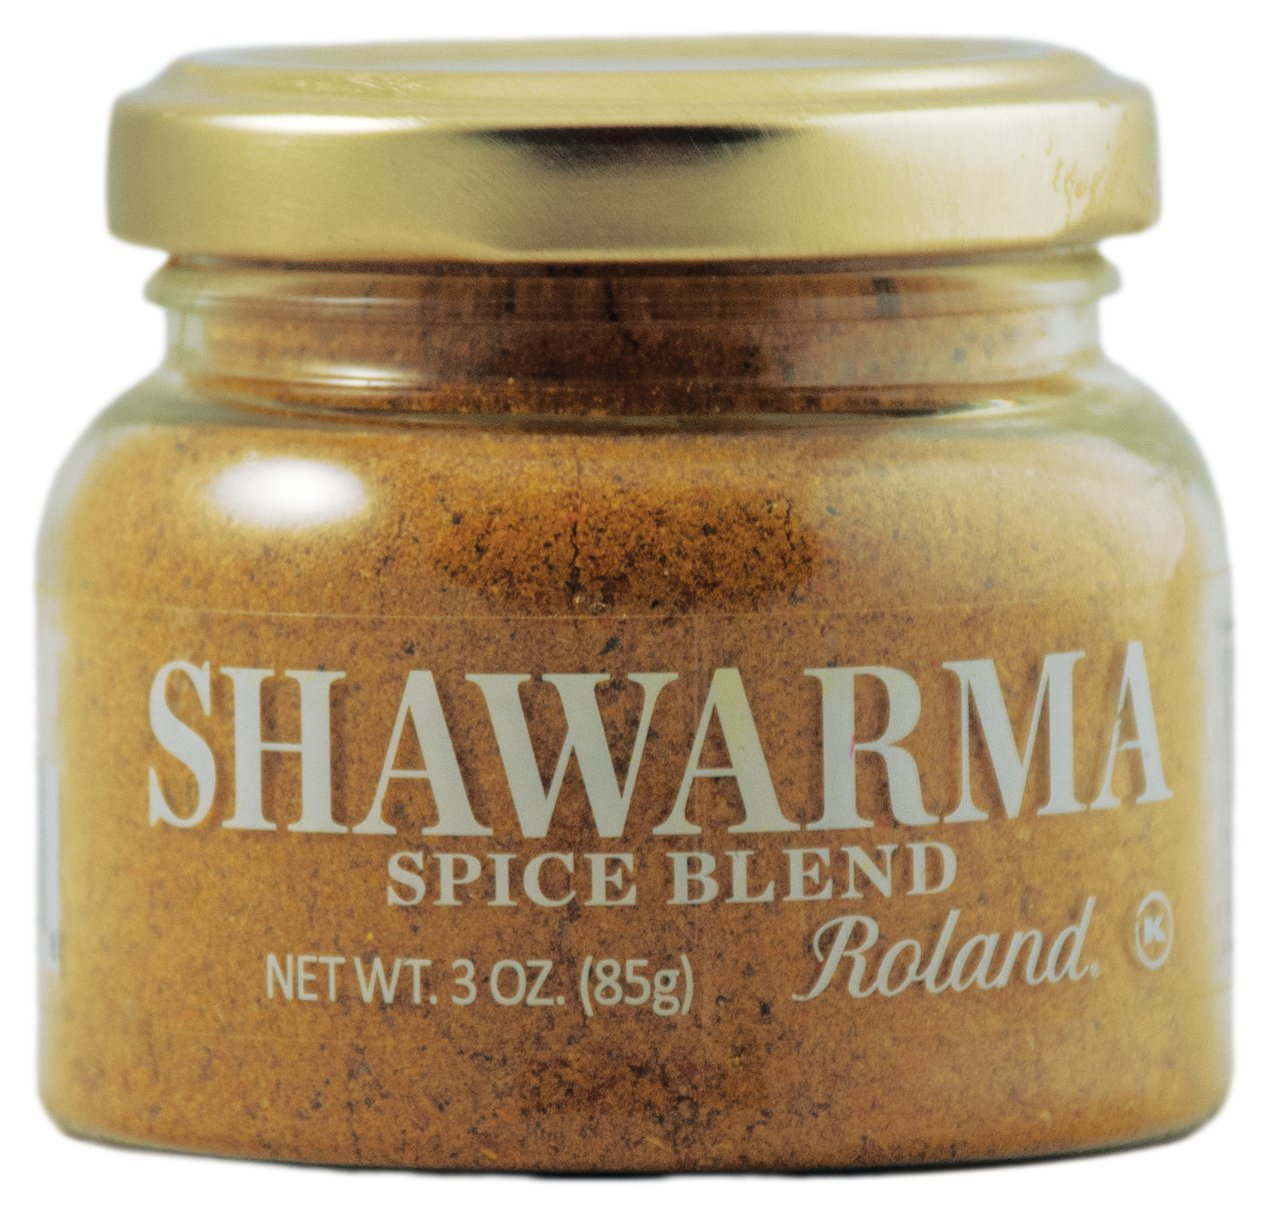 Roland Foods Shawarma Spice Blend, Specialty Imported Food, 3-Ounce Jar